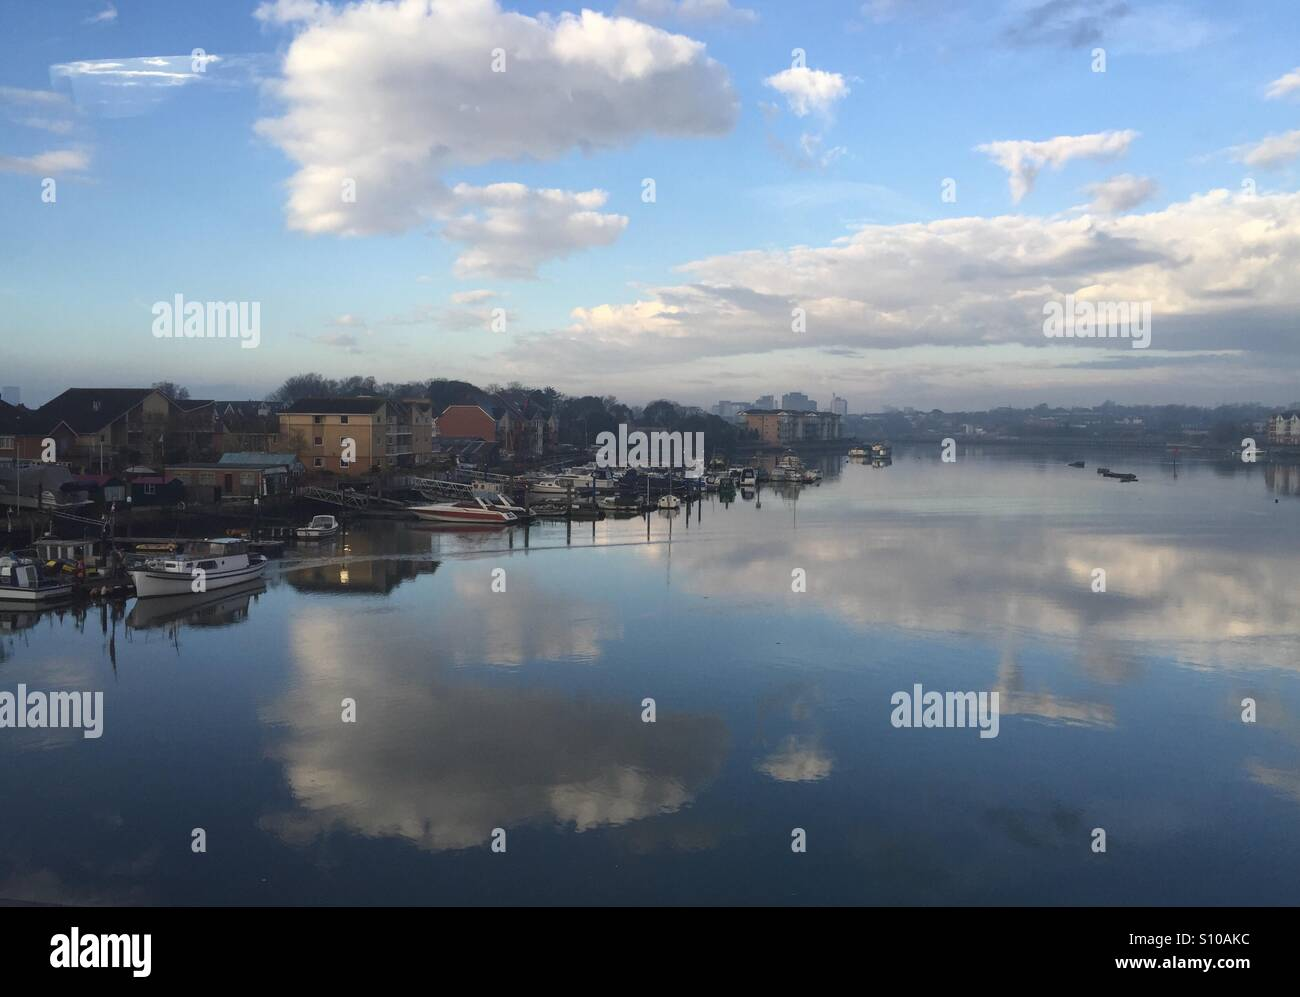 Crossing the river Itchen, Southampton. Hampshire, England - Stock Image